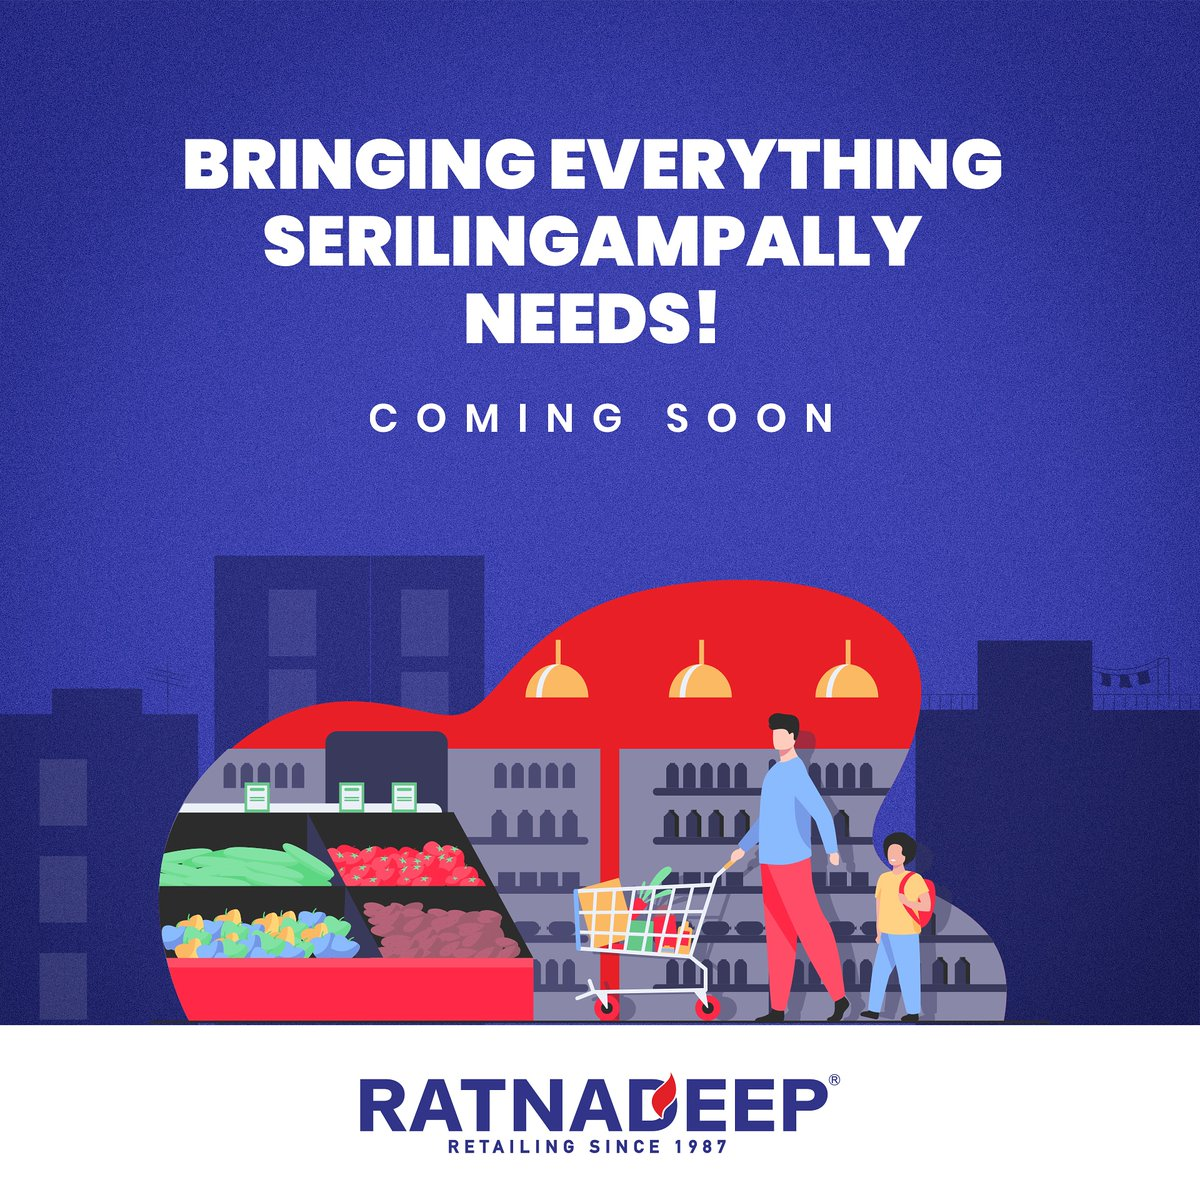 We're delighted to bring you the Ratnadeep experience that countless families have loved. Stay tuned for more updates.  #Ratnadeep #RatnadeepSupermarket #FamilySupermarket #DailyNeeds #GroceryStore #Freshness #Delighted #NewStore #ComingSoon #StayTuned #Serilingampally #Hyderabad https://t.co/DPbkI3WvnK